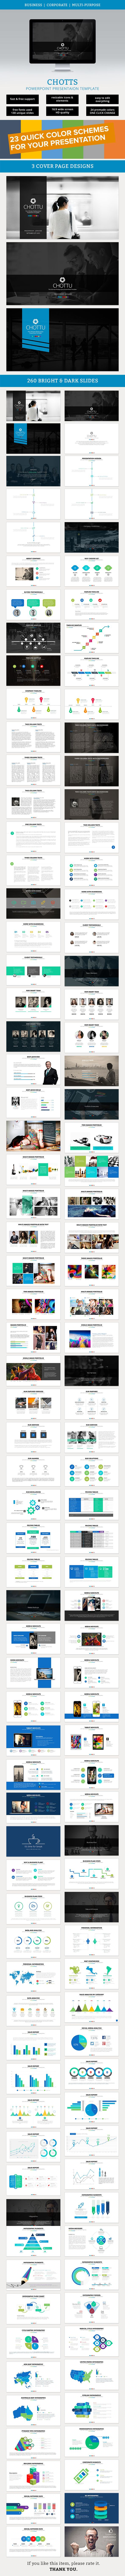 Chotts PowerPoint Template is suitable for any Business Presentations. #ChottsPowerPoint #1studio #GraphicRiver